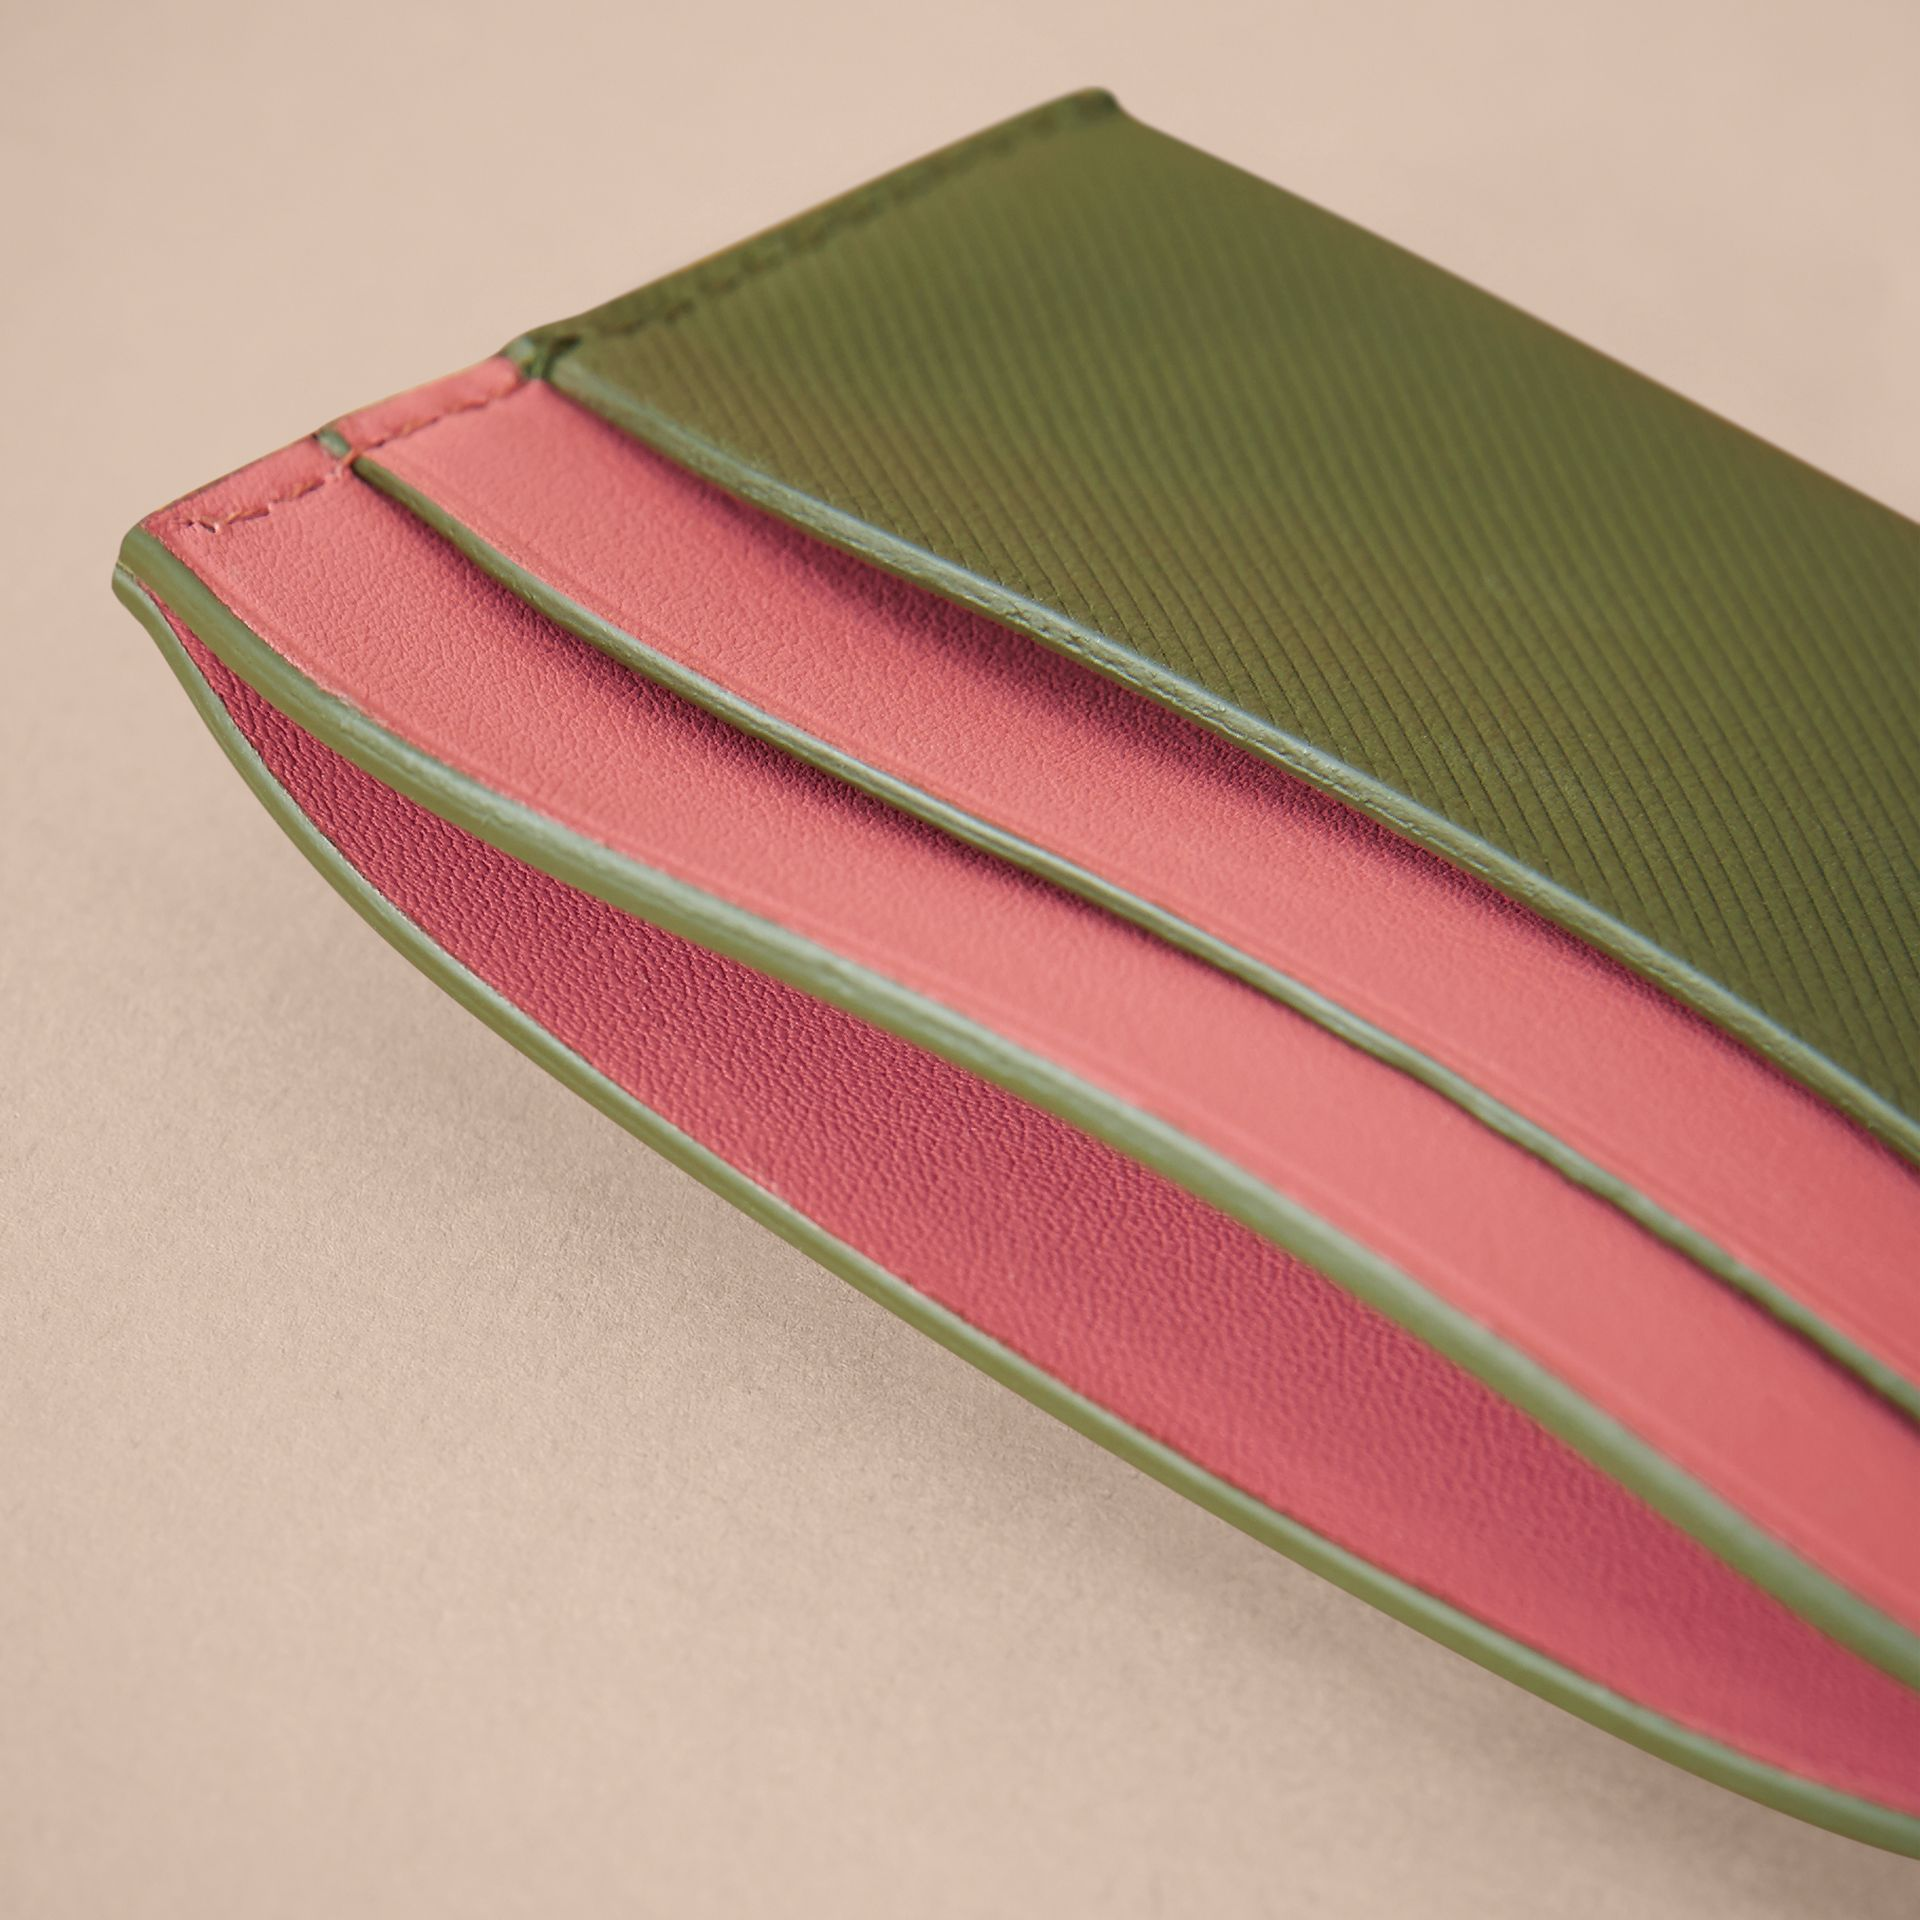 Two-tone Trench Leather Card Case in Mss Green/ Blsm Pink - Women | Burberry - gallery image 4